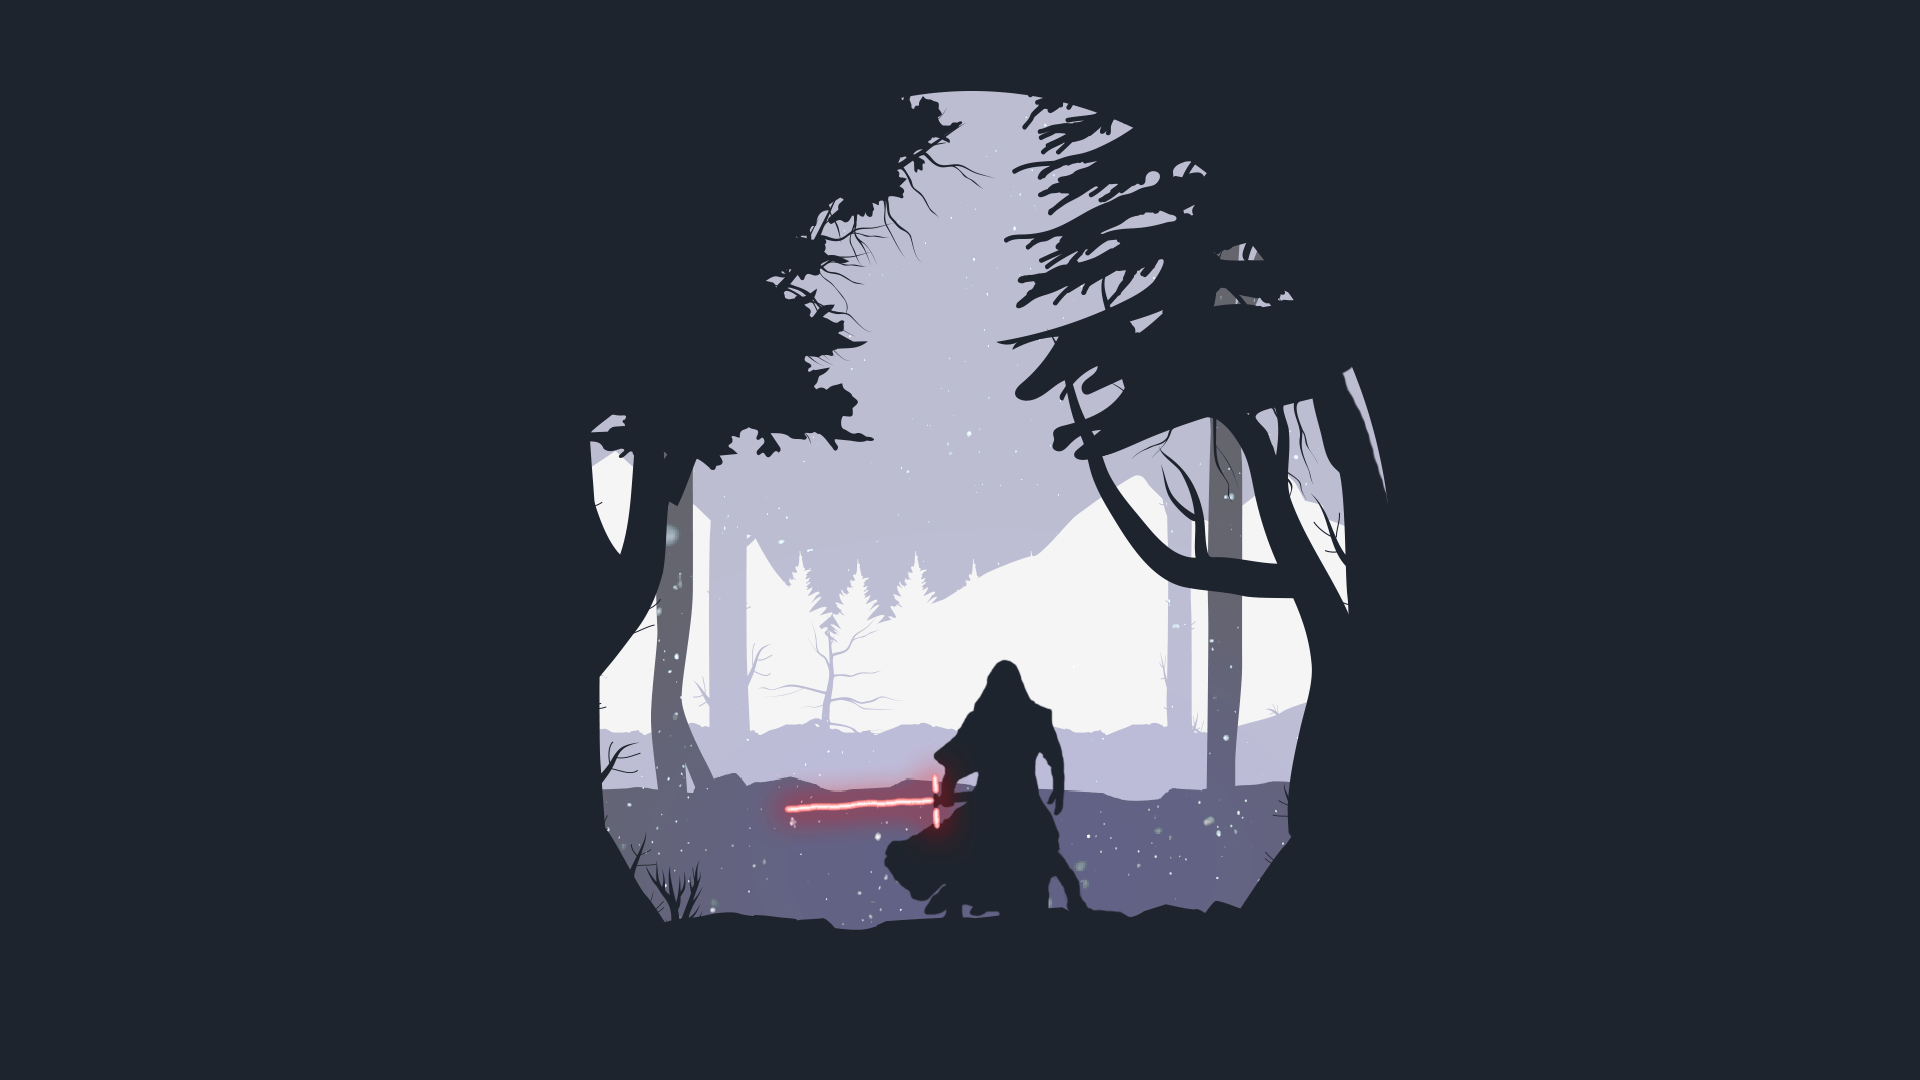 Minimal Star Wars Wallpapers Top Free Minimal Star Wars Backgrounds Wallpaperaccess